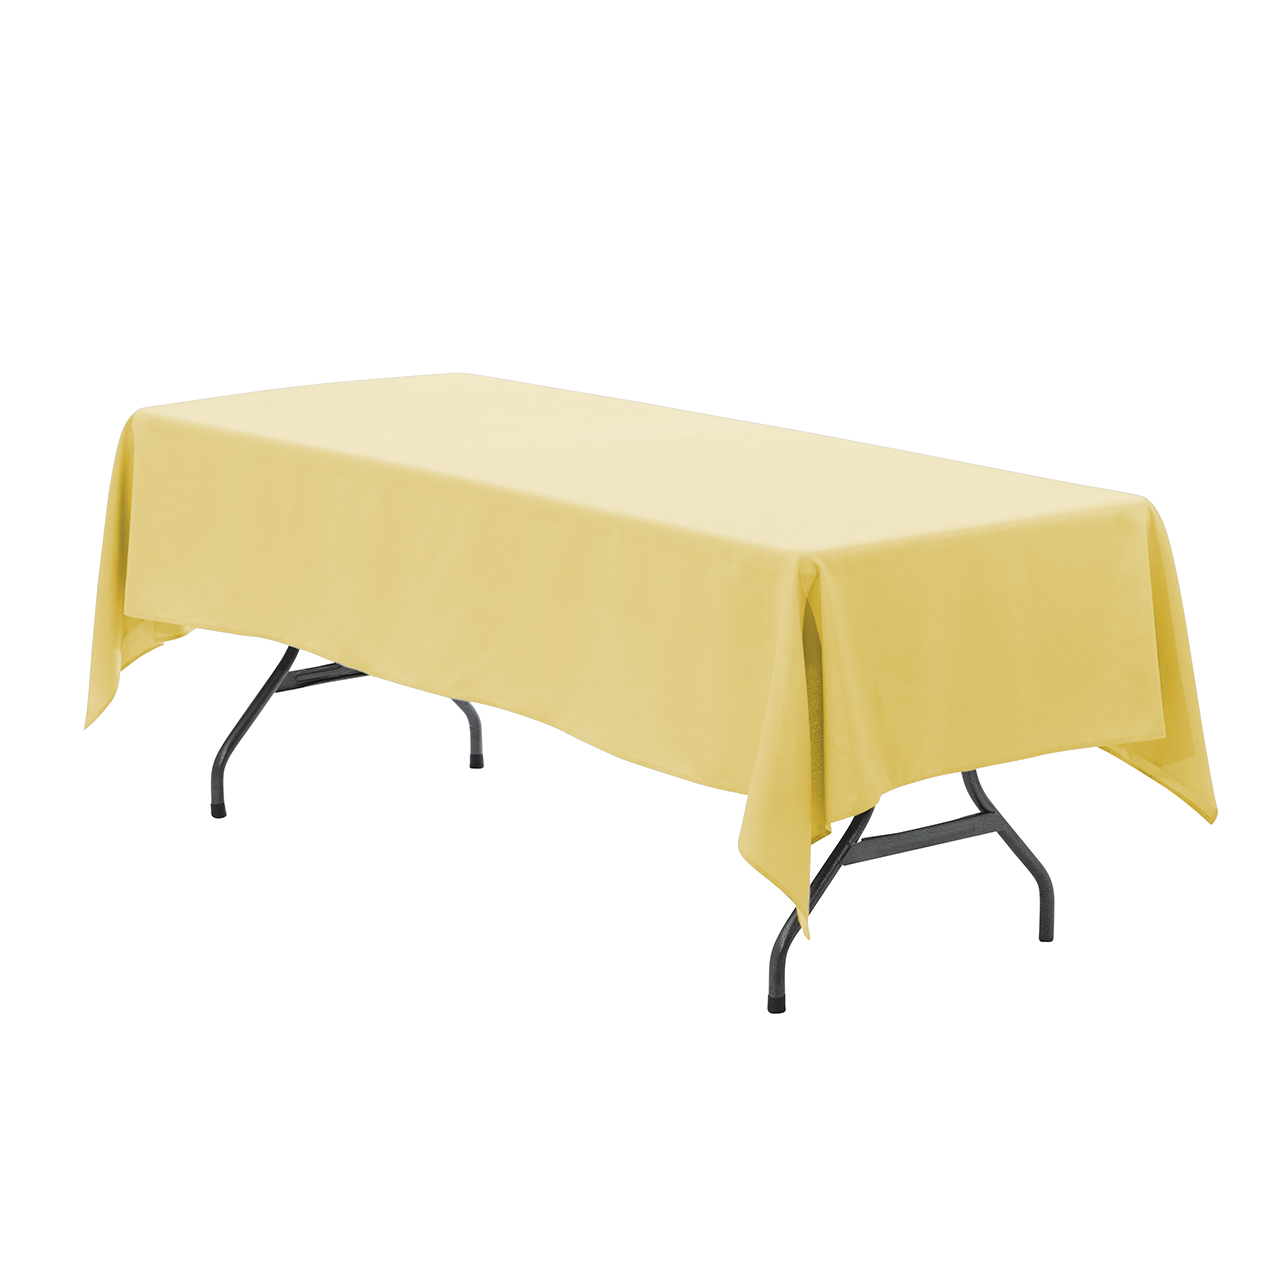 60 X 102 Inch Rectangular Polyester Tablecloths Pastel Yellow Wholesale Table Linens